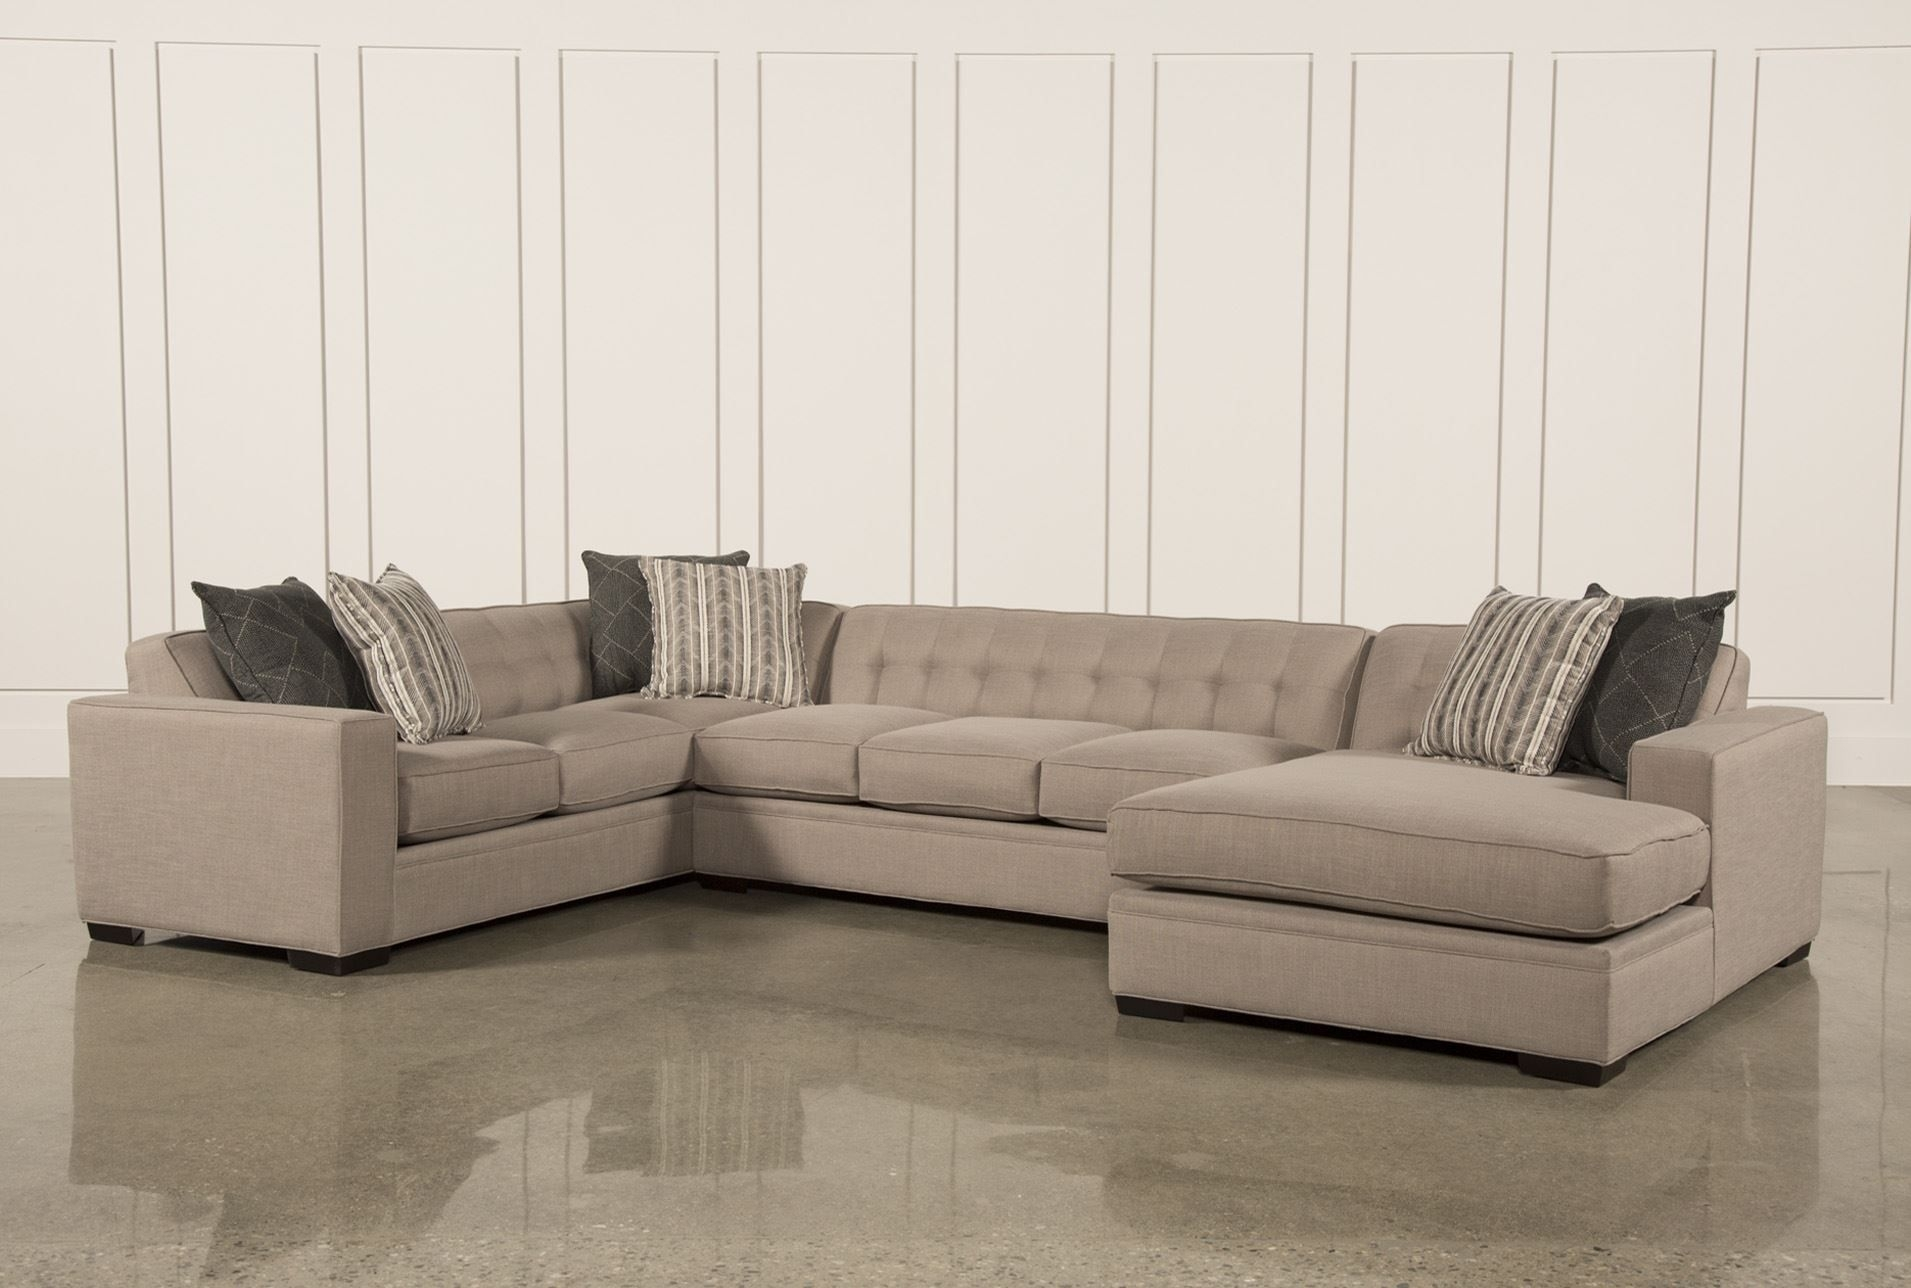 Corbin 3 Piece Sectional W/raf Chaise | New House: Loft | Pinterest throughout Glamour Ii 3 Piece Sectionals (Image 6 of 30)